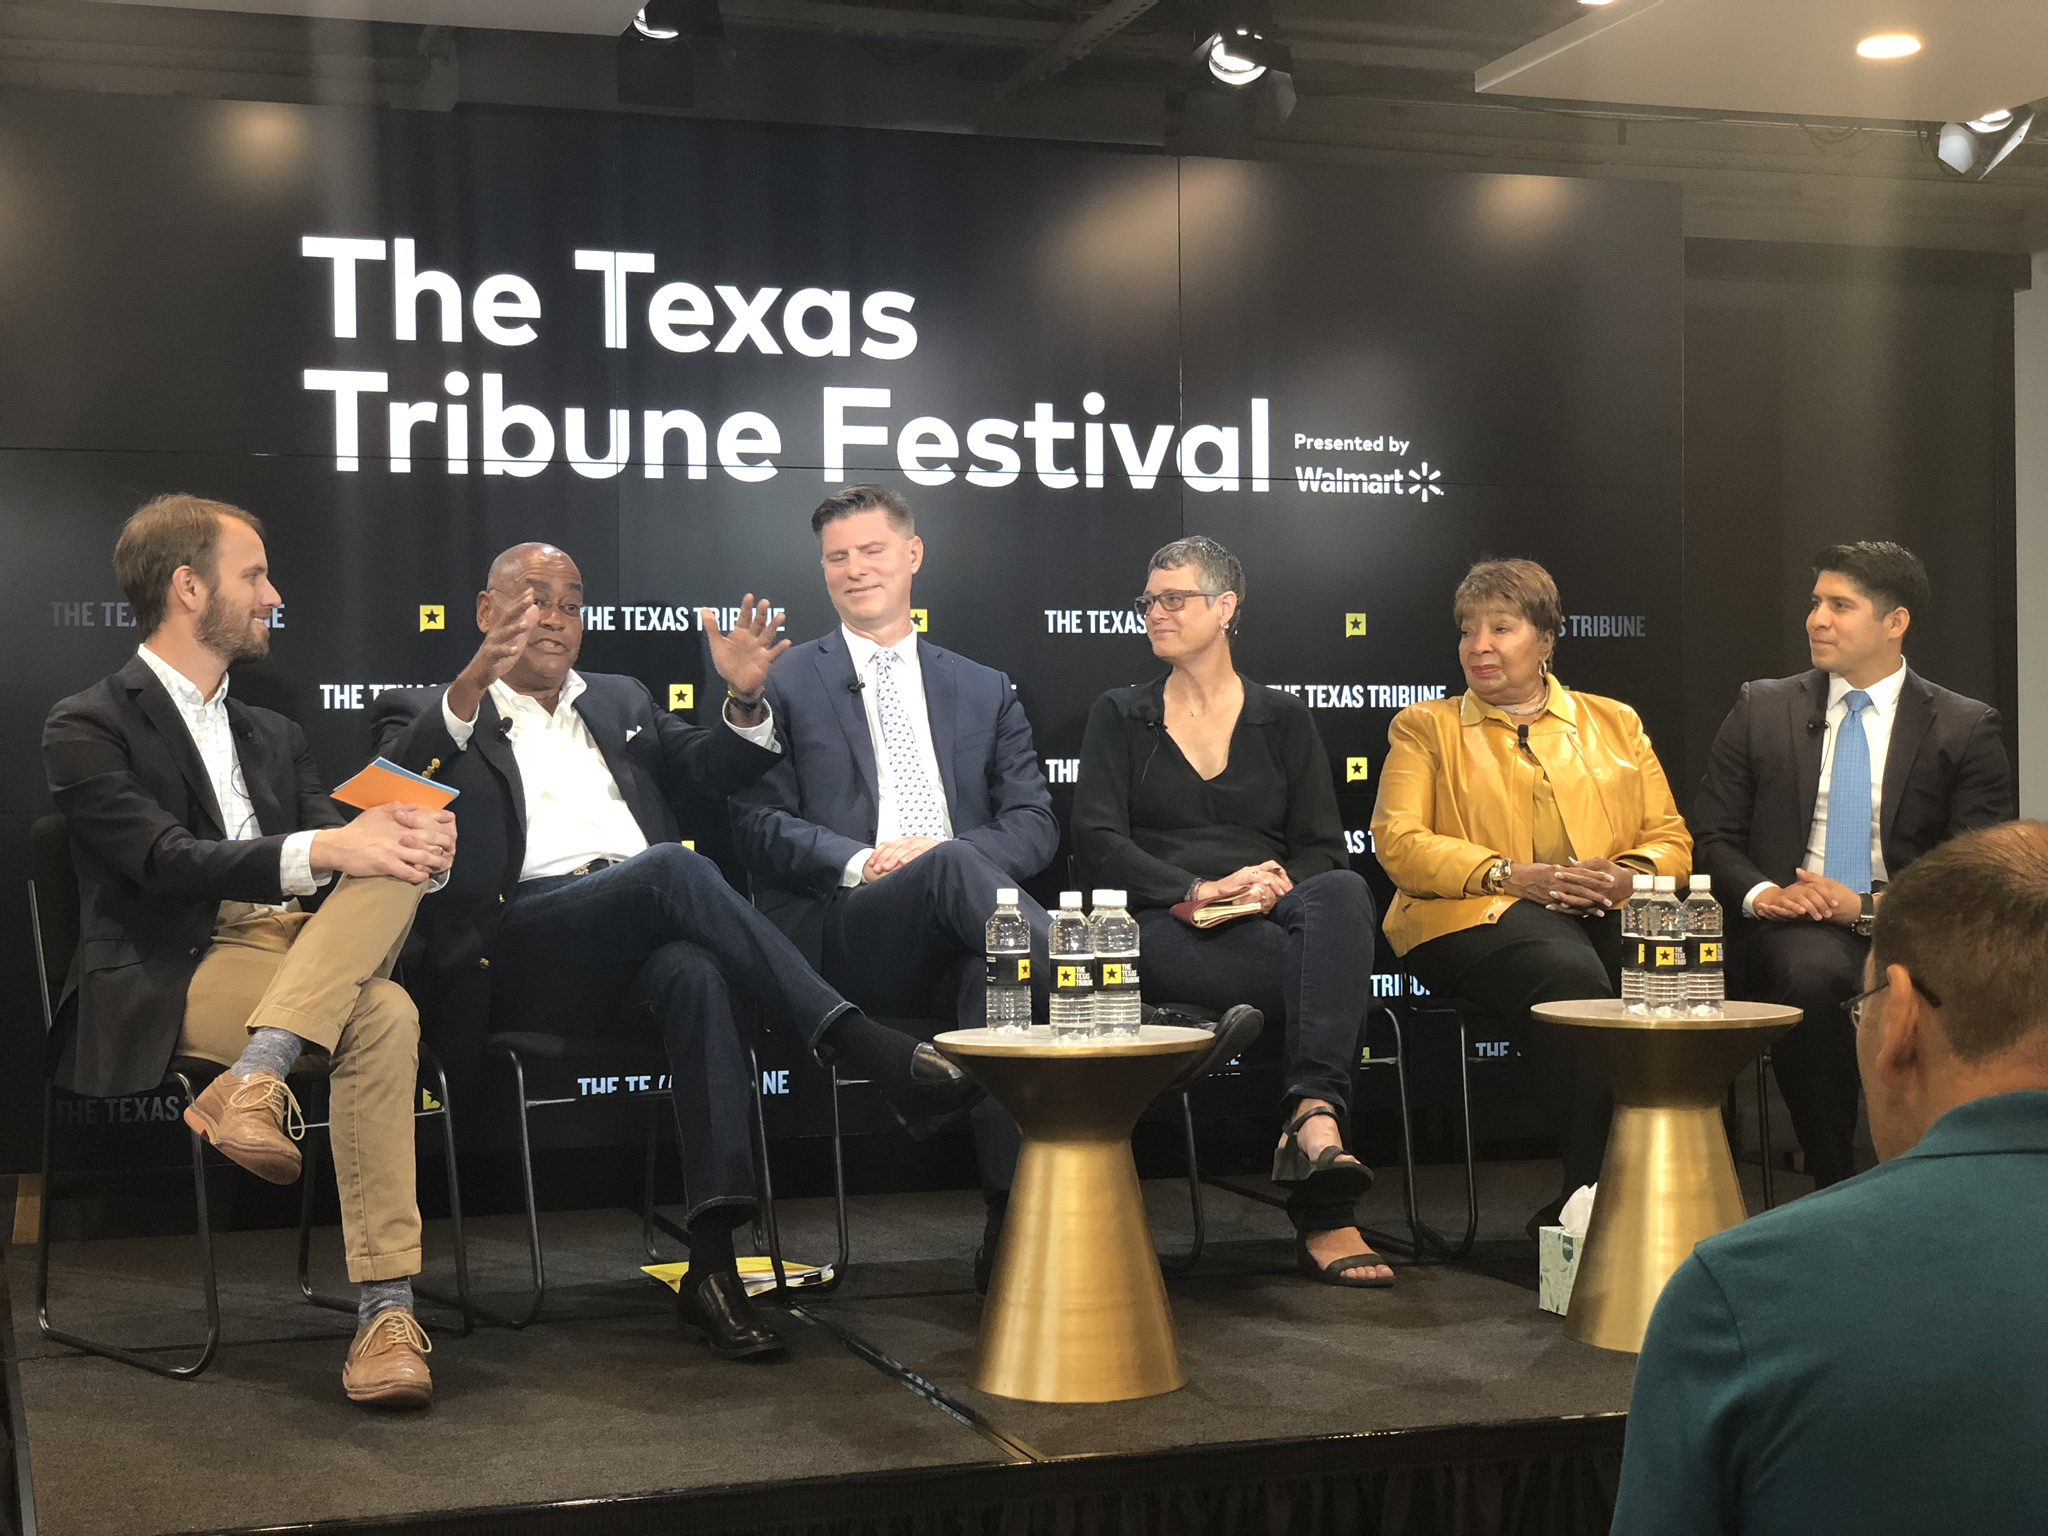 Travis County Judge and LBJ alum Sarah Eckhardt (3rd from right) in a Texas Tribune Festival '18 panel.